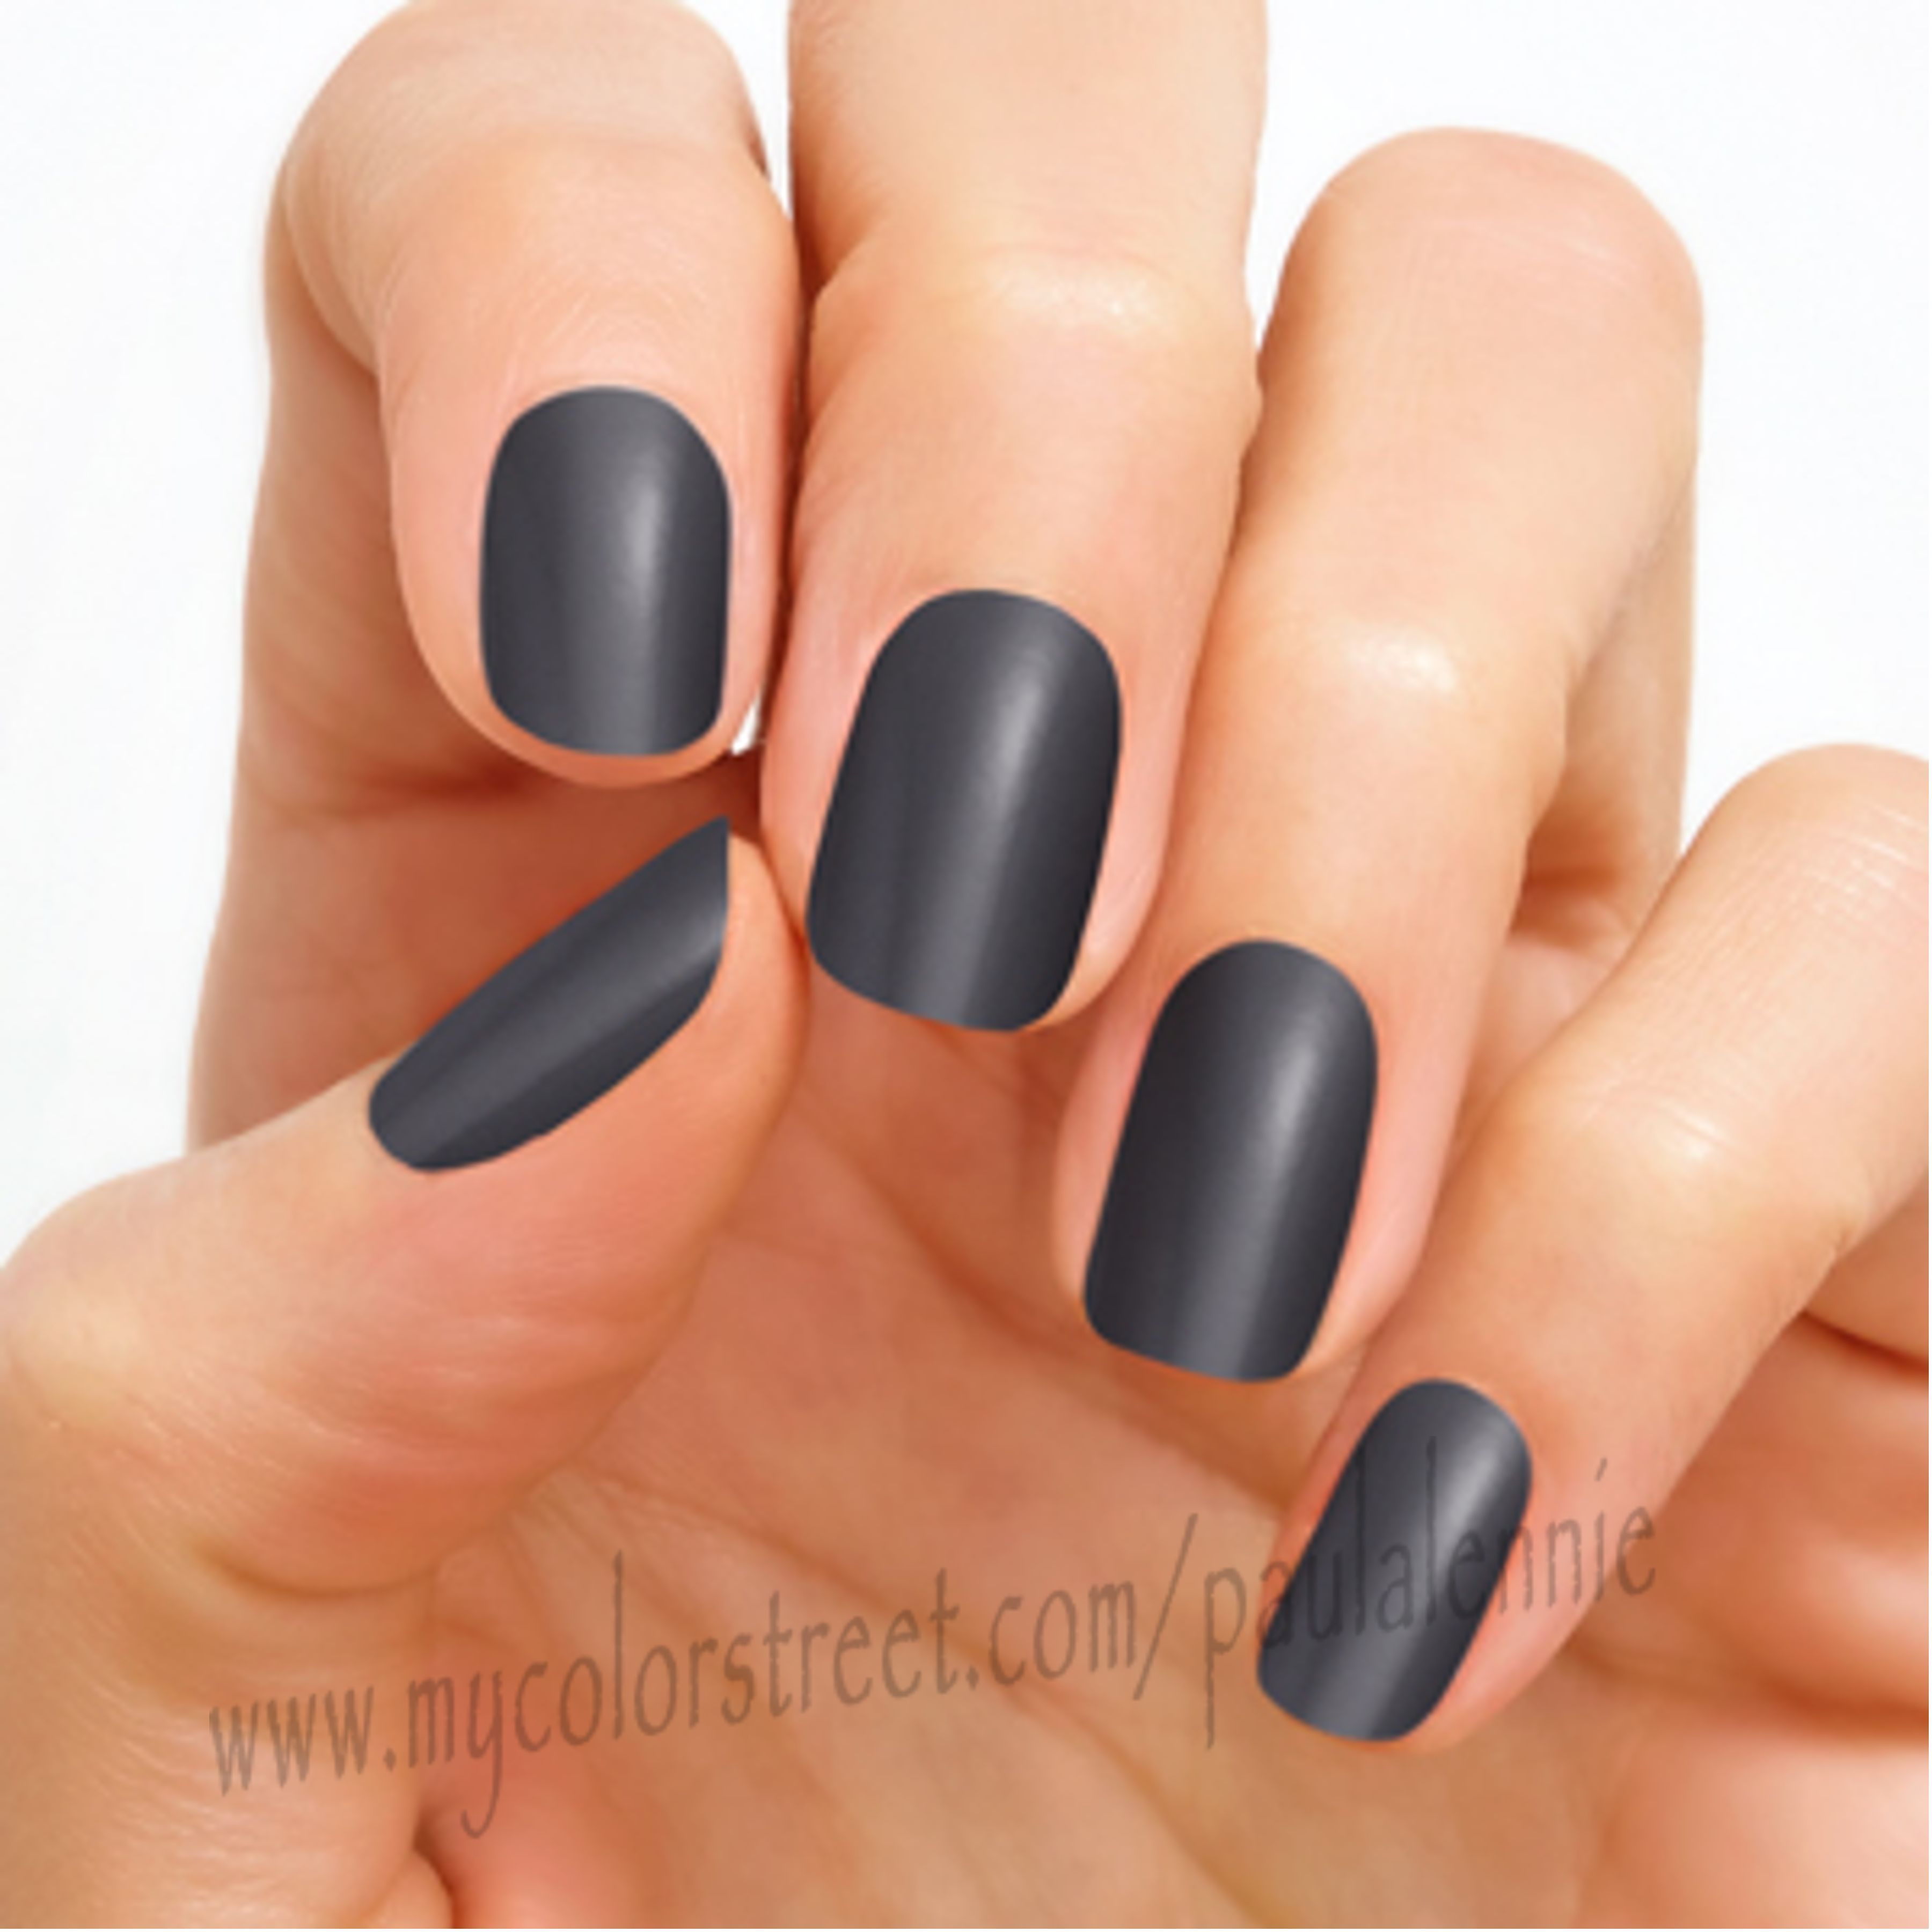 Steel City - Top your tips with dark grey Steel City nails to ...